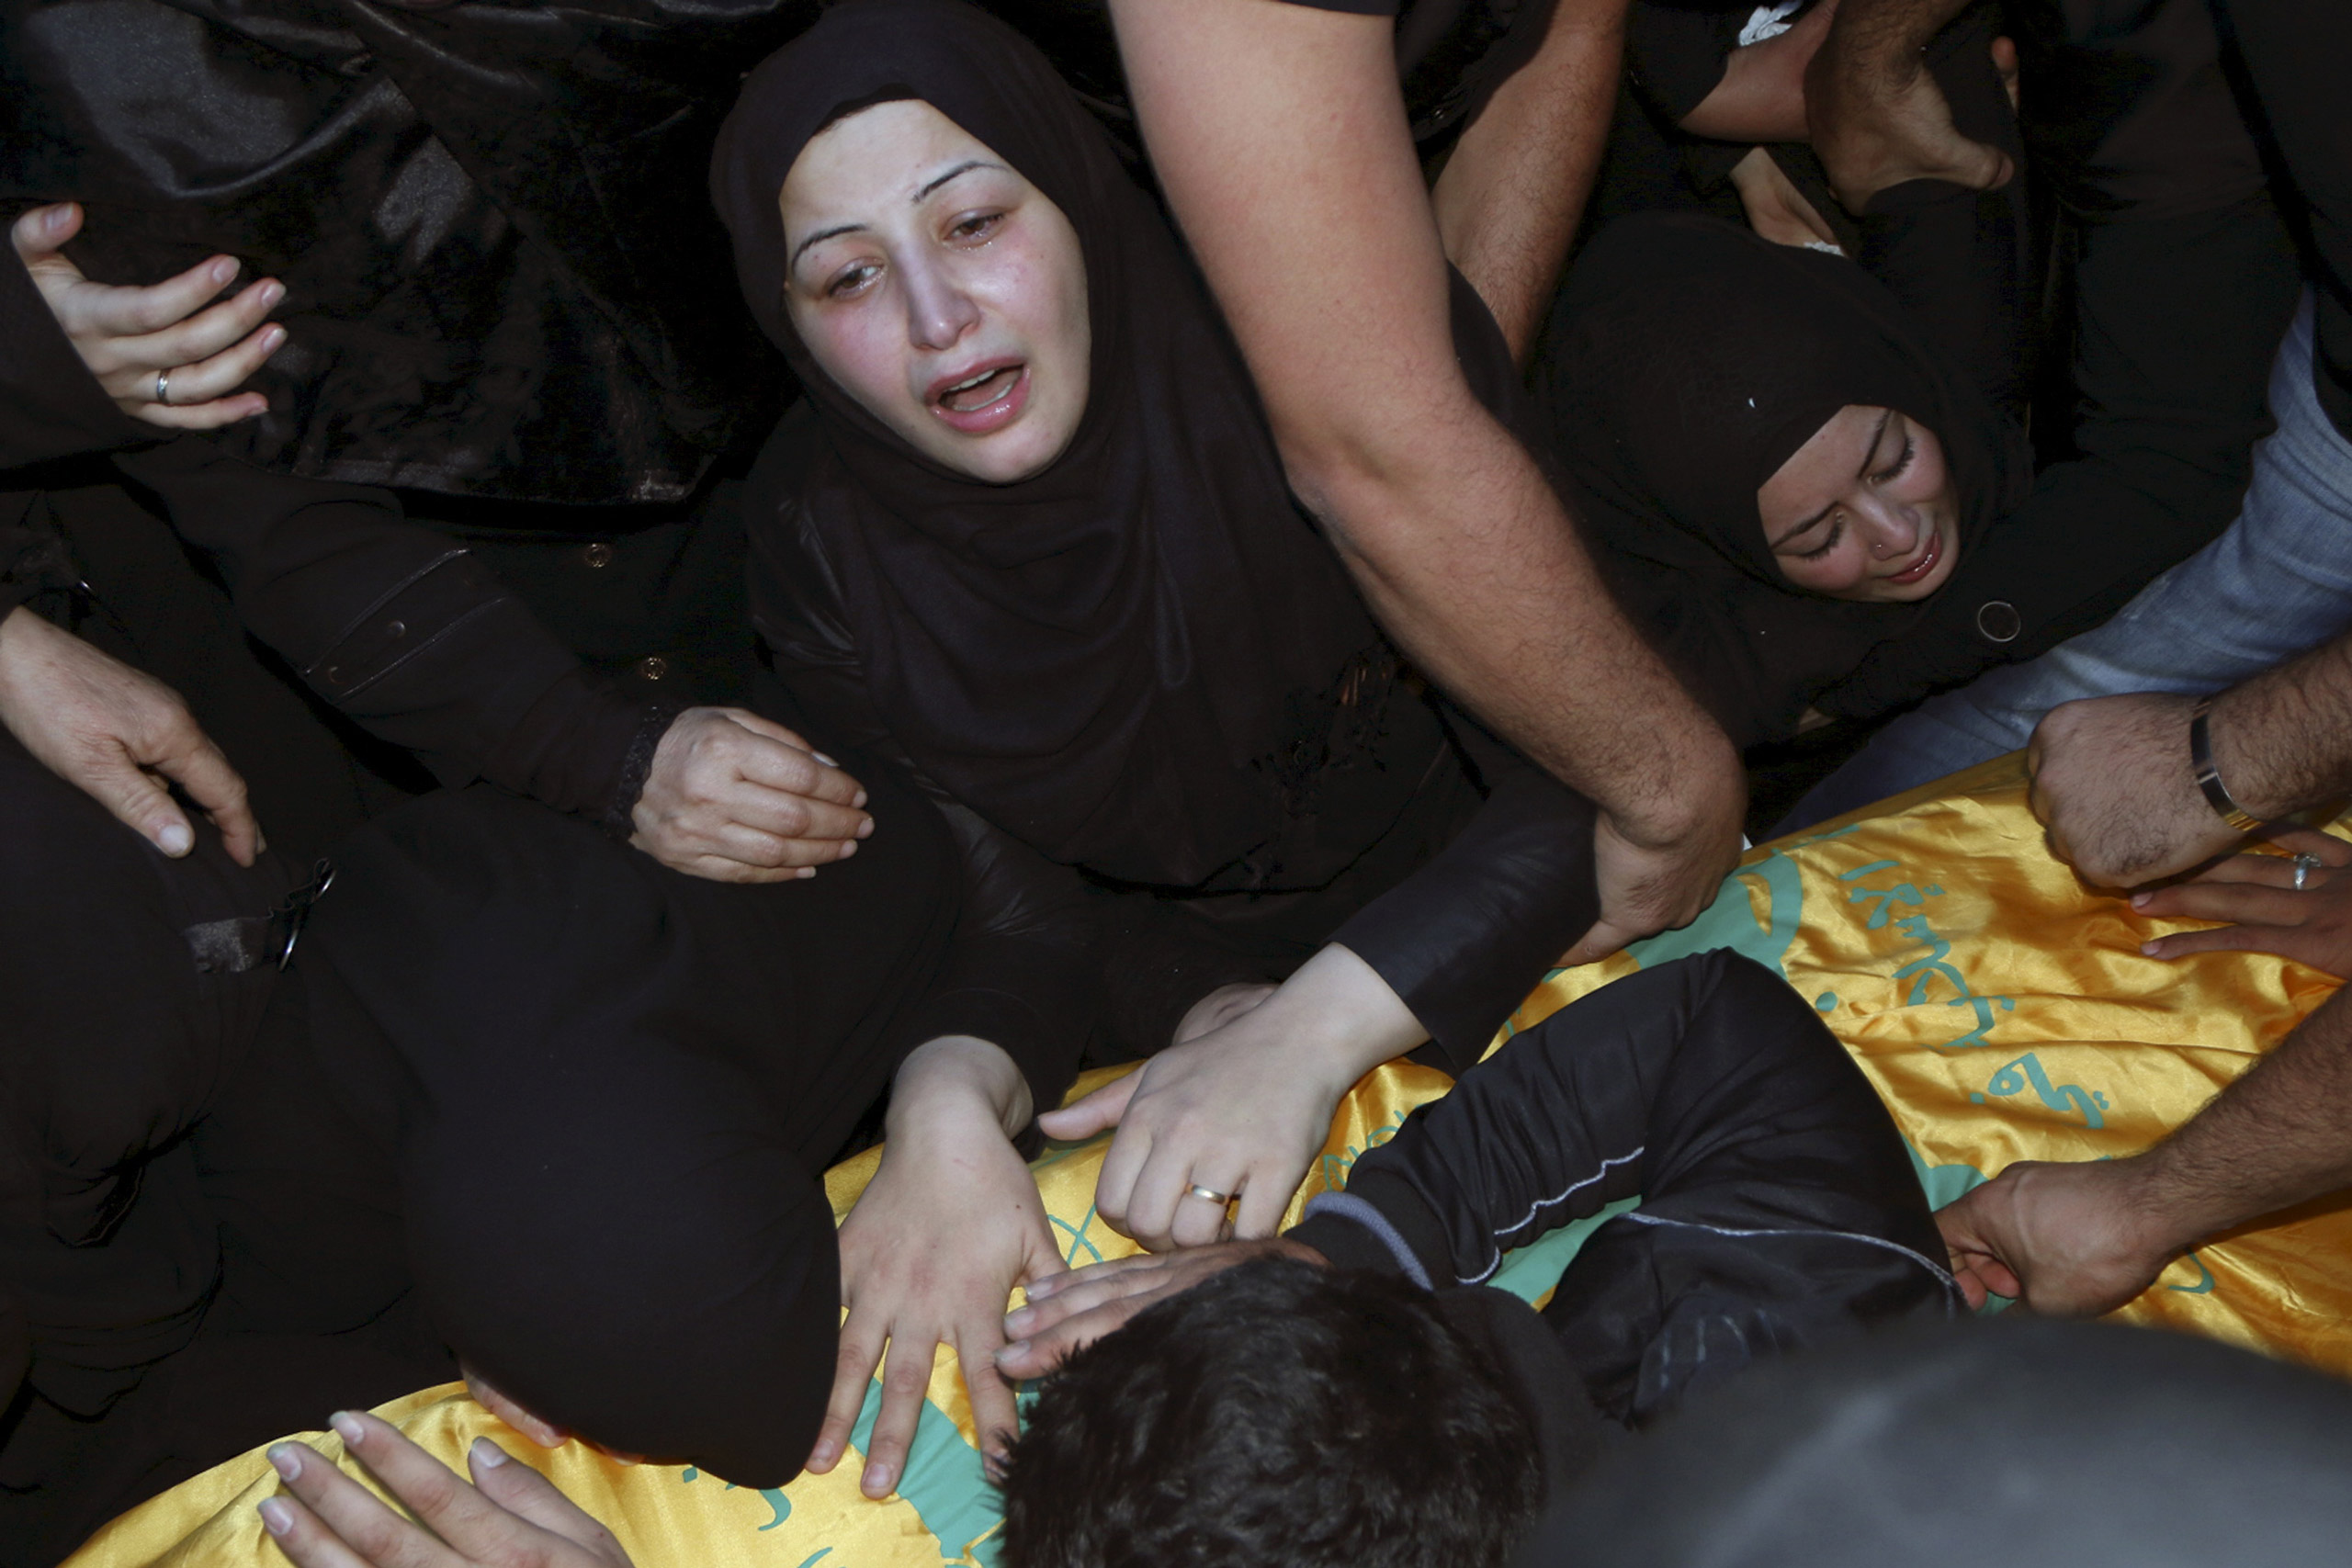 Relatives mourn over the coffin of Hezbollah member Adel Akram Termos, who was killed in the two explosions that occurred on Thursday in Beirut's southern suburbs, during his funeral in Tallousa, southern Lebanon, on Nov. 13, 2015.